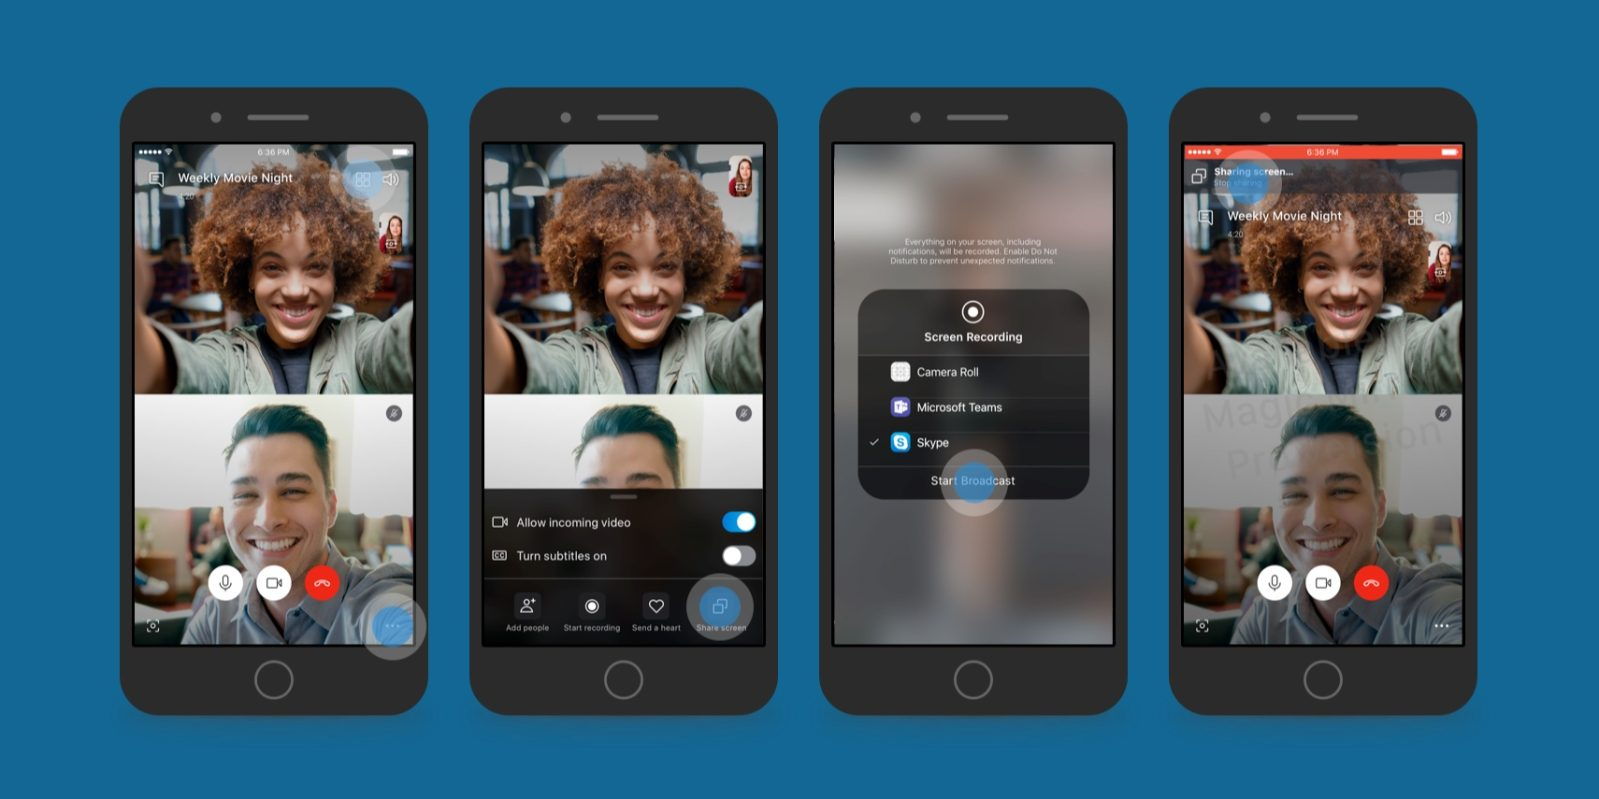 Skype for iOS Beta Adds Ability to Share your iPhone and iPad Screen with Others